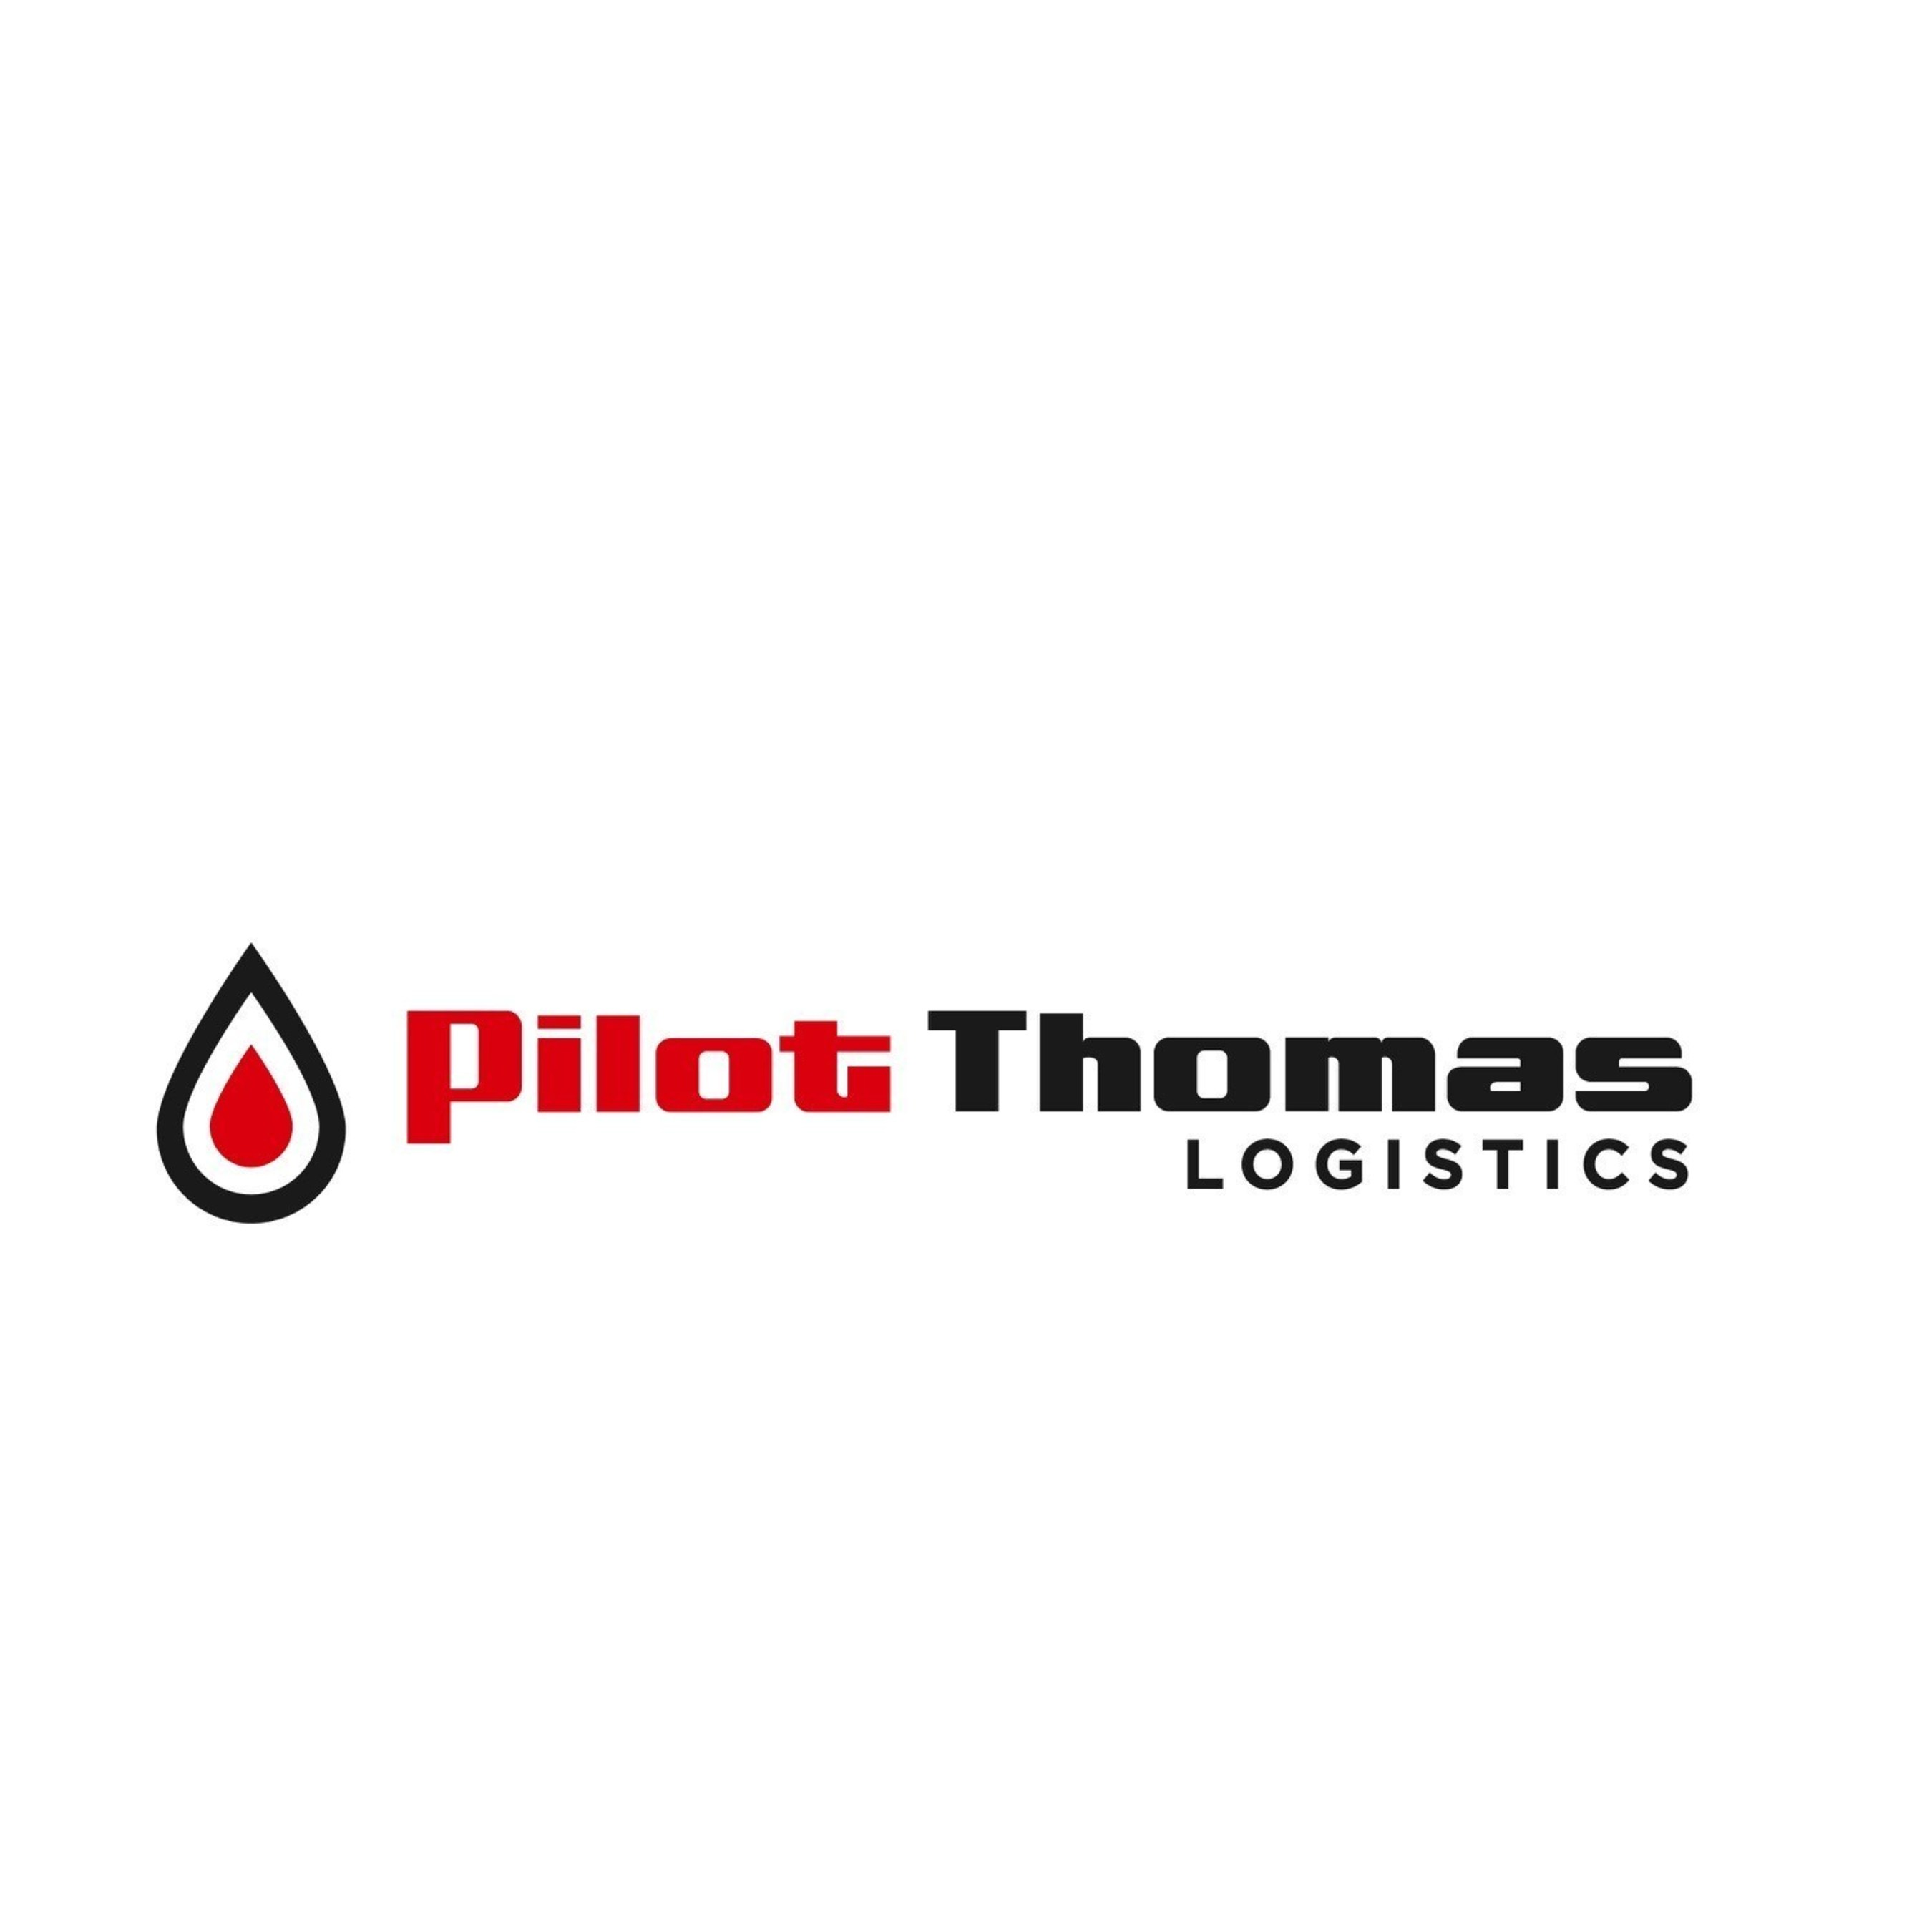 Pilot Logistics Services and Thomas Petroleum announce the completion of their merger to form the premier provider of fuel, lubricants and chemical solutions to the North American energy, mining and marine industries. The combined organization will operate as Pilot Thomas Logistics, headquartered in Fort Worth, Texas.